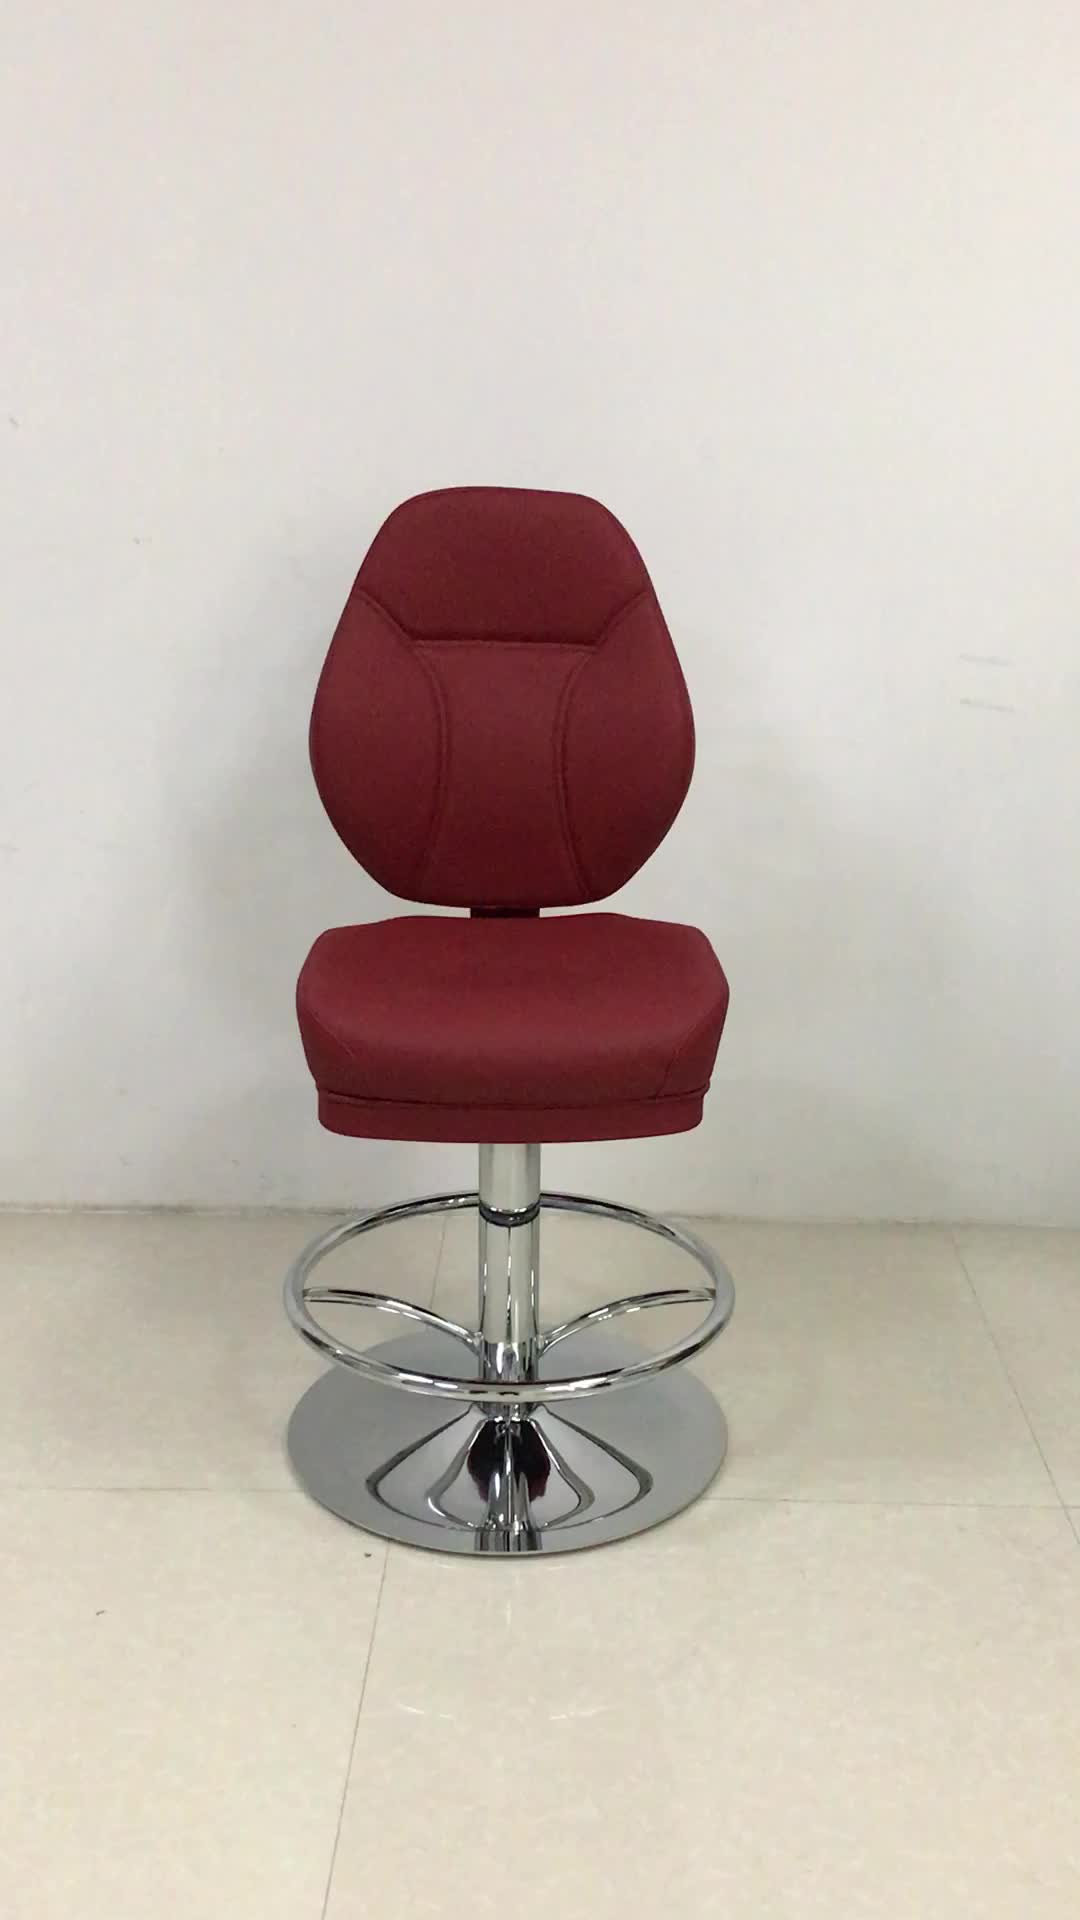 Office Chairs Canberra Best Canberra Thoroughbred Park Chair Buy Canberra Thoroughbred Park Thoroughbred Park Canberra Thoroughbred Park Chair Product On Alibaba